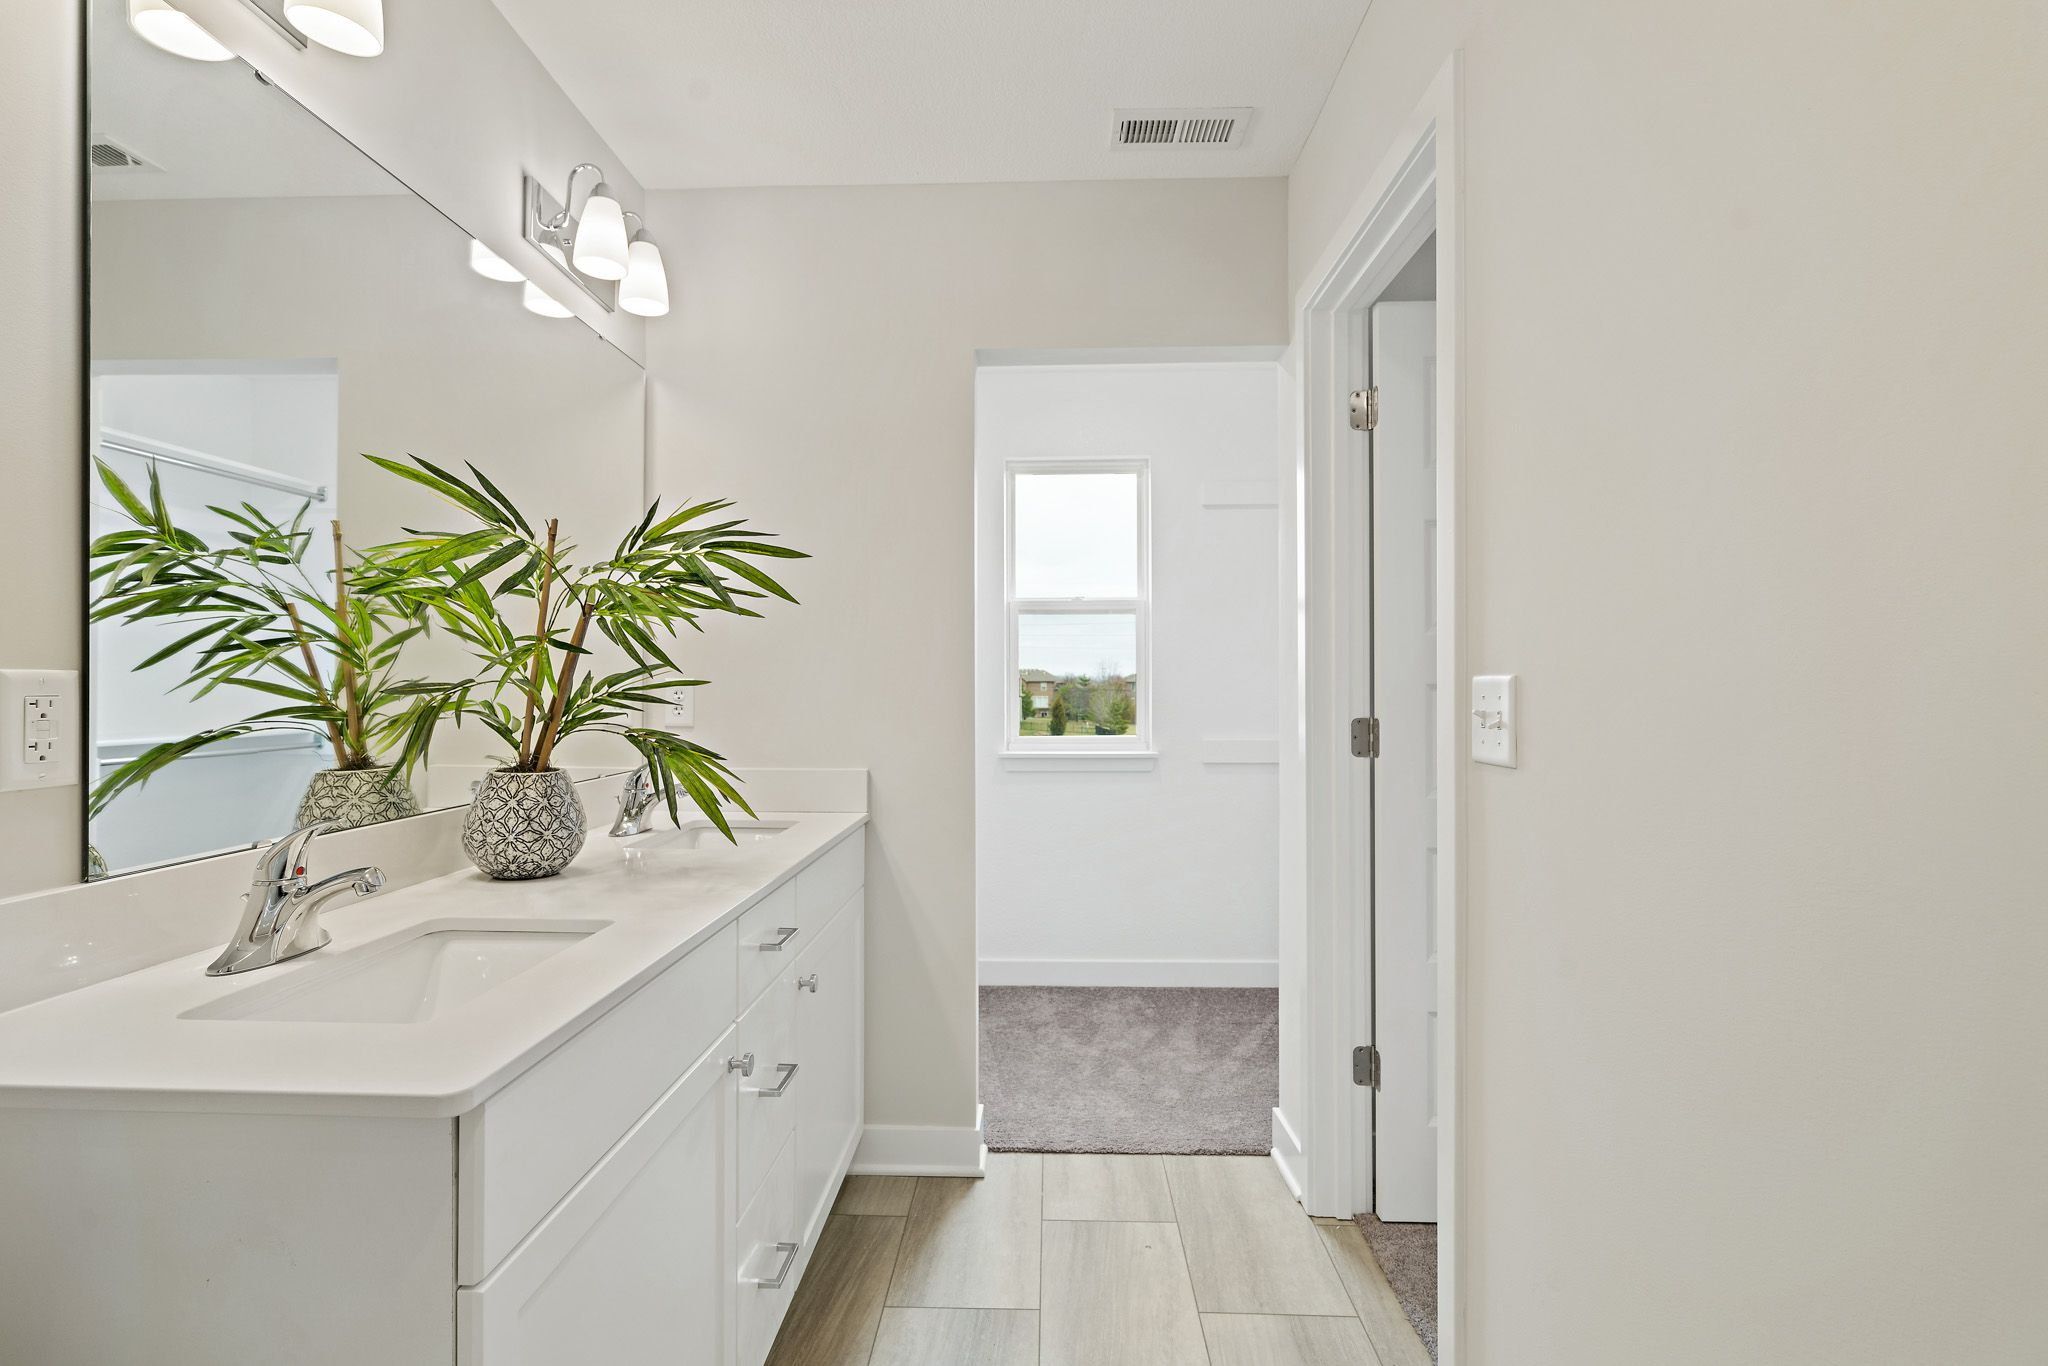 Bathroom featured in the indigo - contemporary By clover & hive in Kansas City, MO